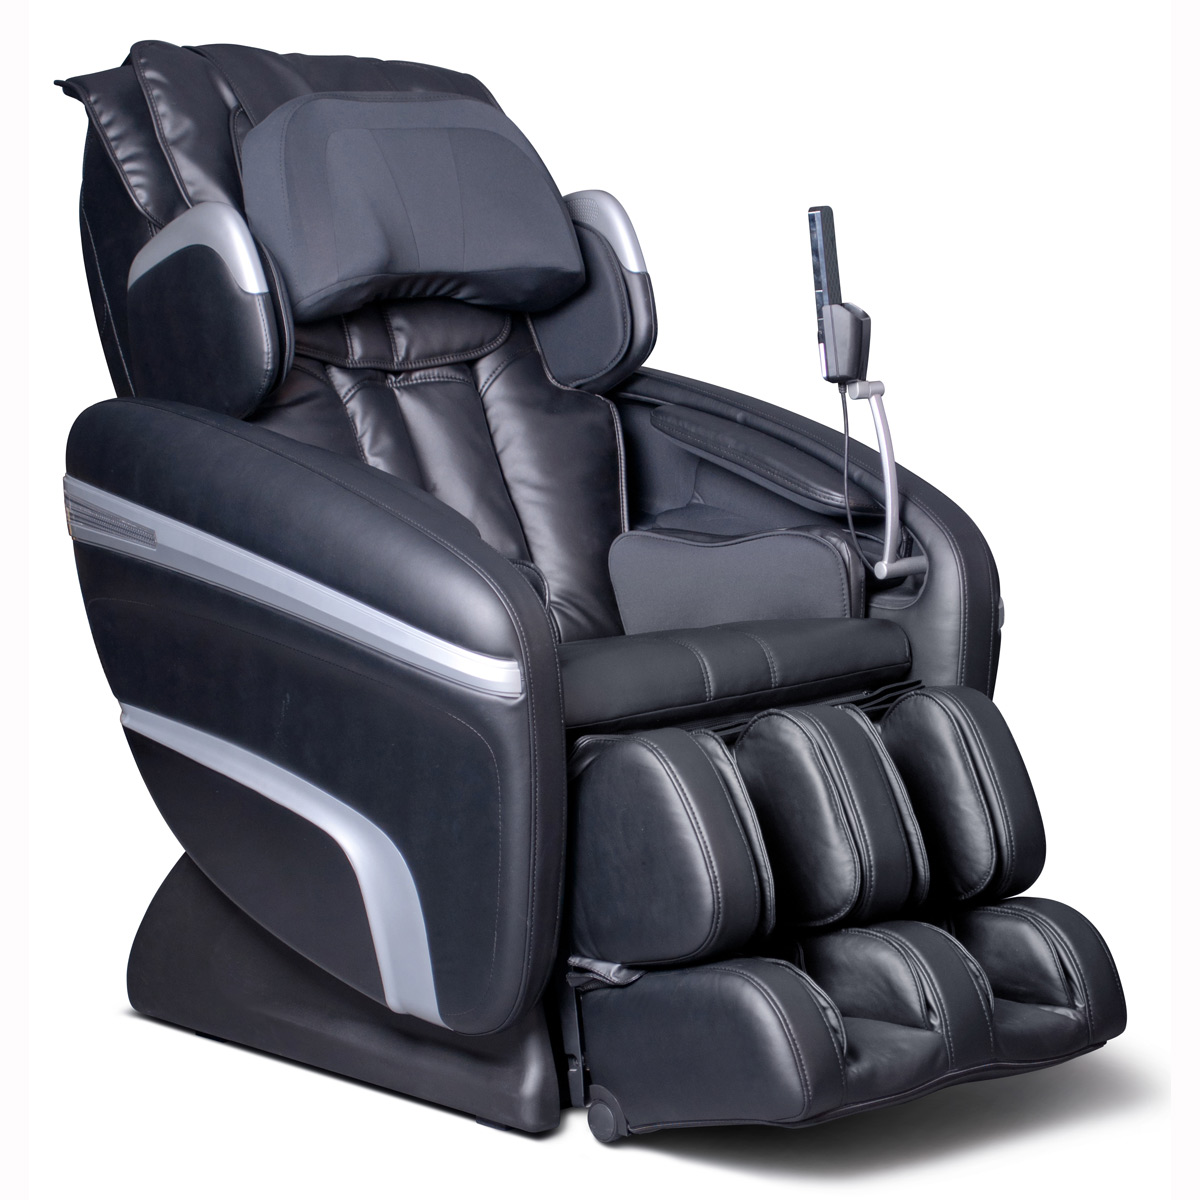 Osaki Massage Chairs Osaki 7200 Executive Zero Gravity S Track Heated Massage